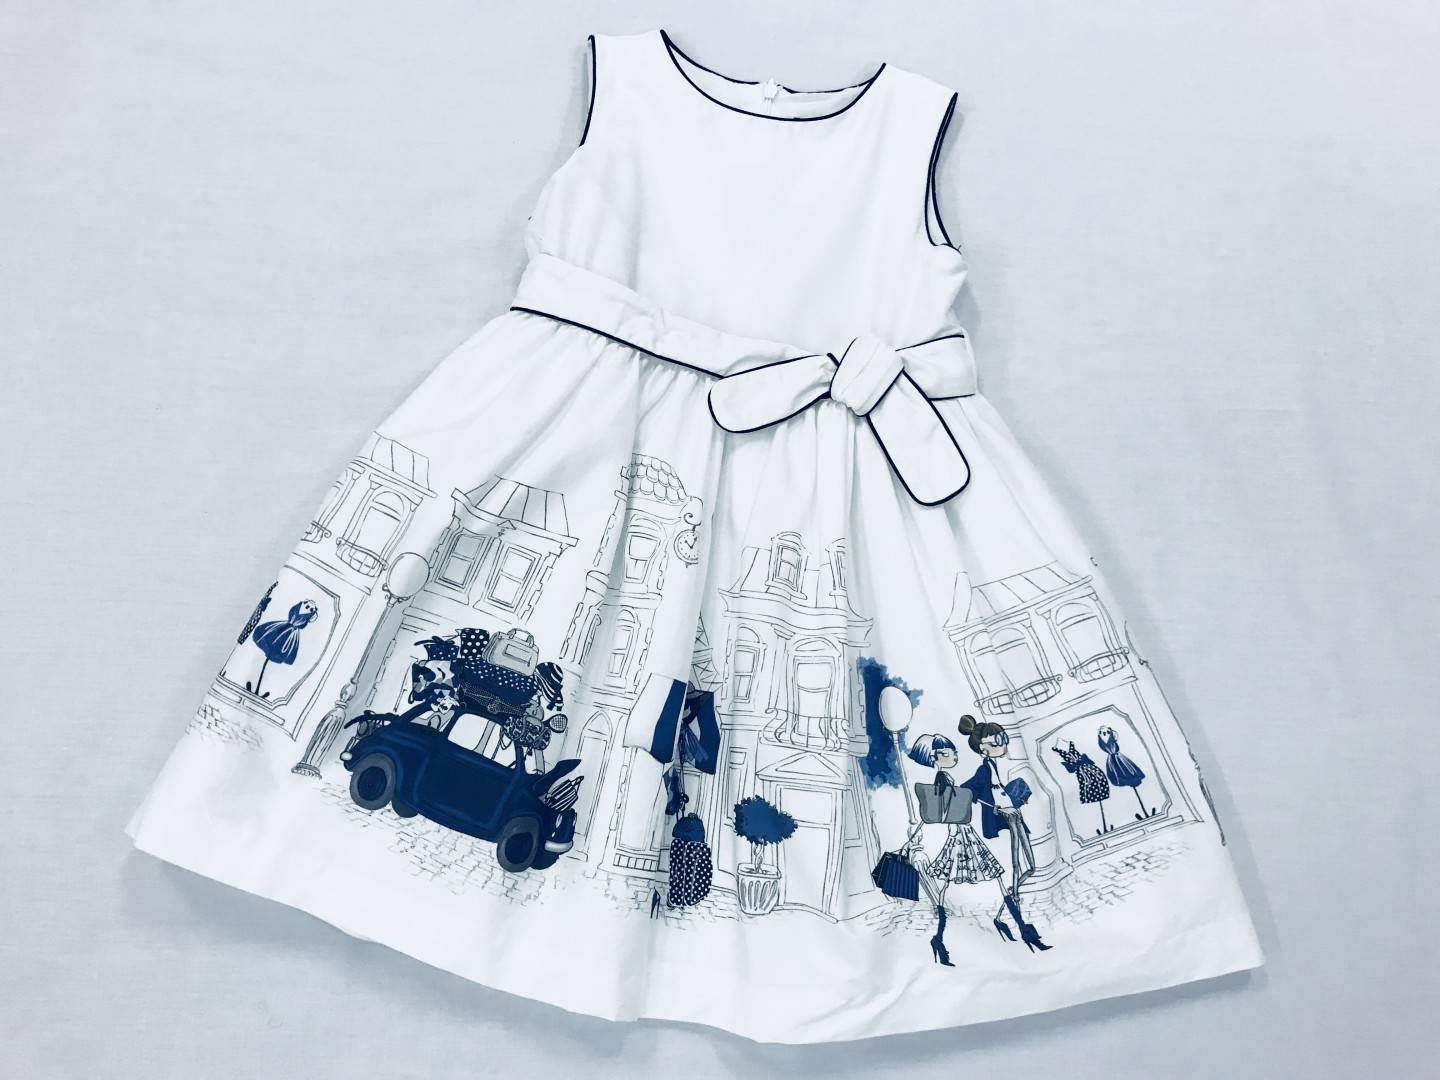 NAVY BLUE AND WHITE DRESS SIZE 5-7